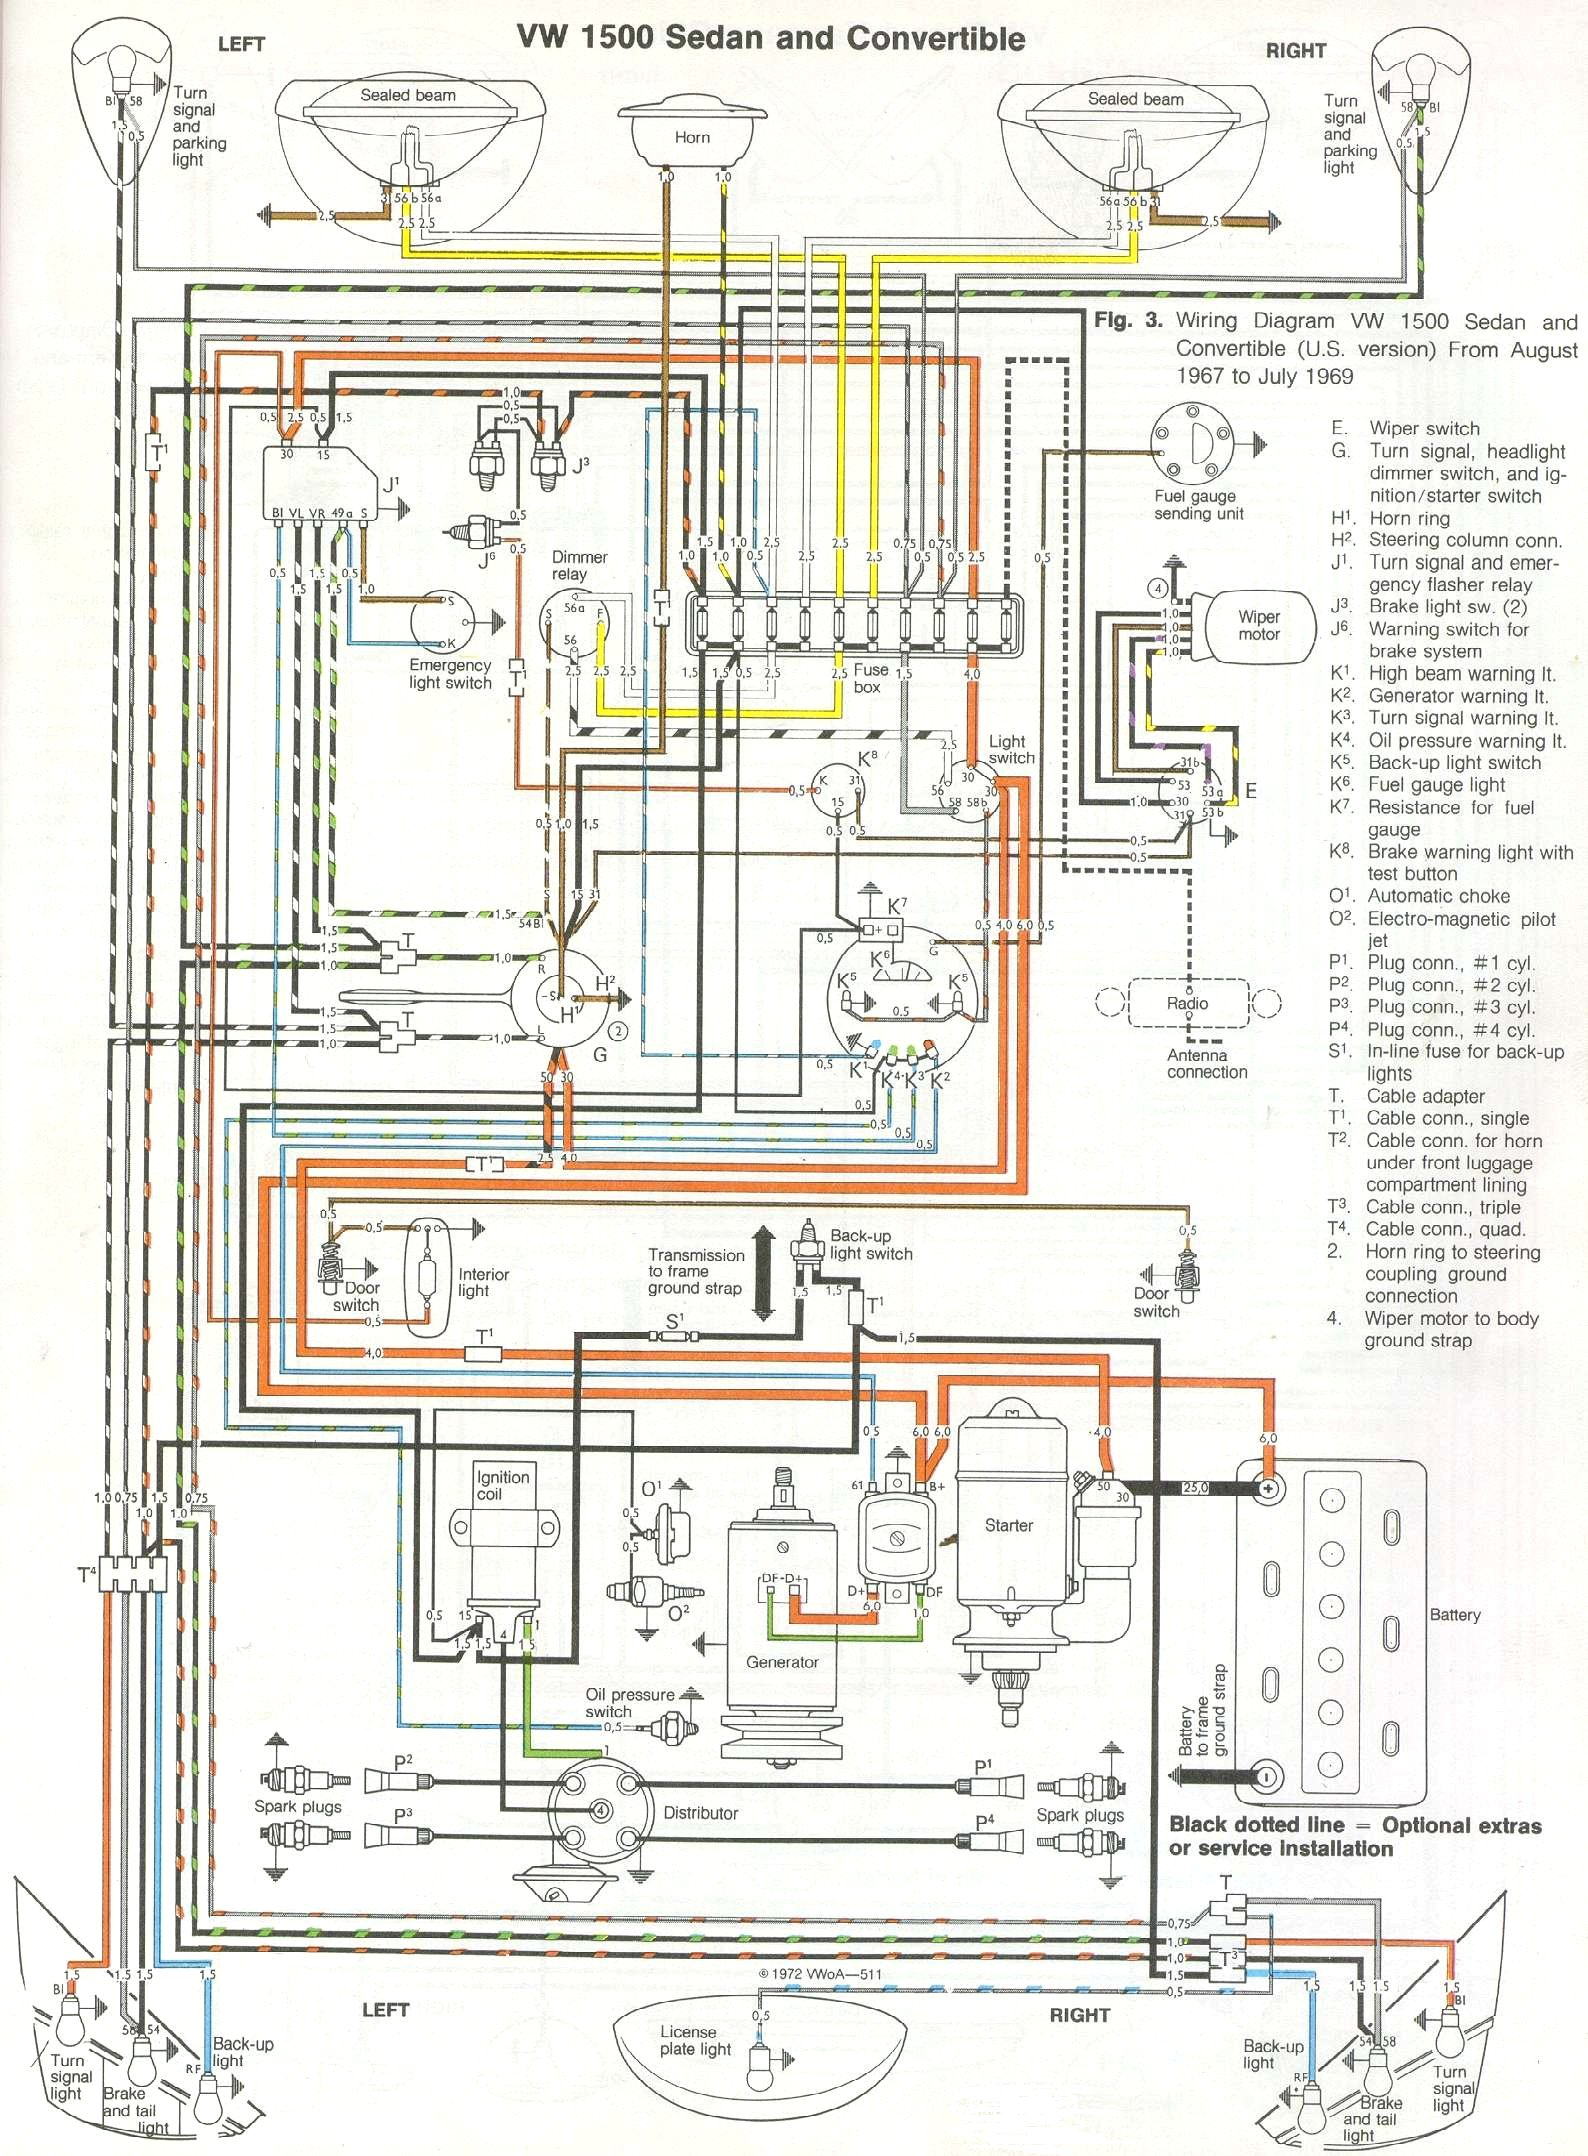 72 vw generator wiring diagram 72 wiring diagrams online vw generator wiring diagram